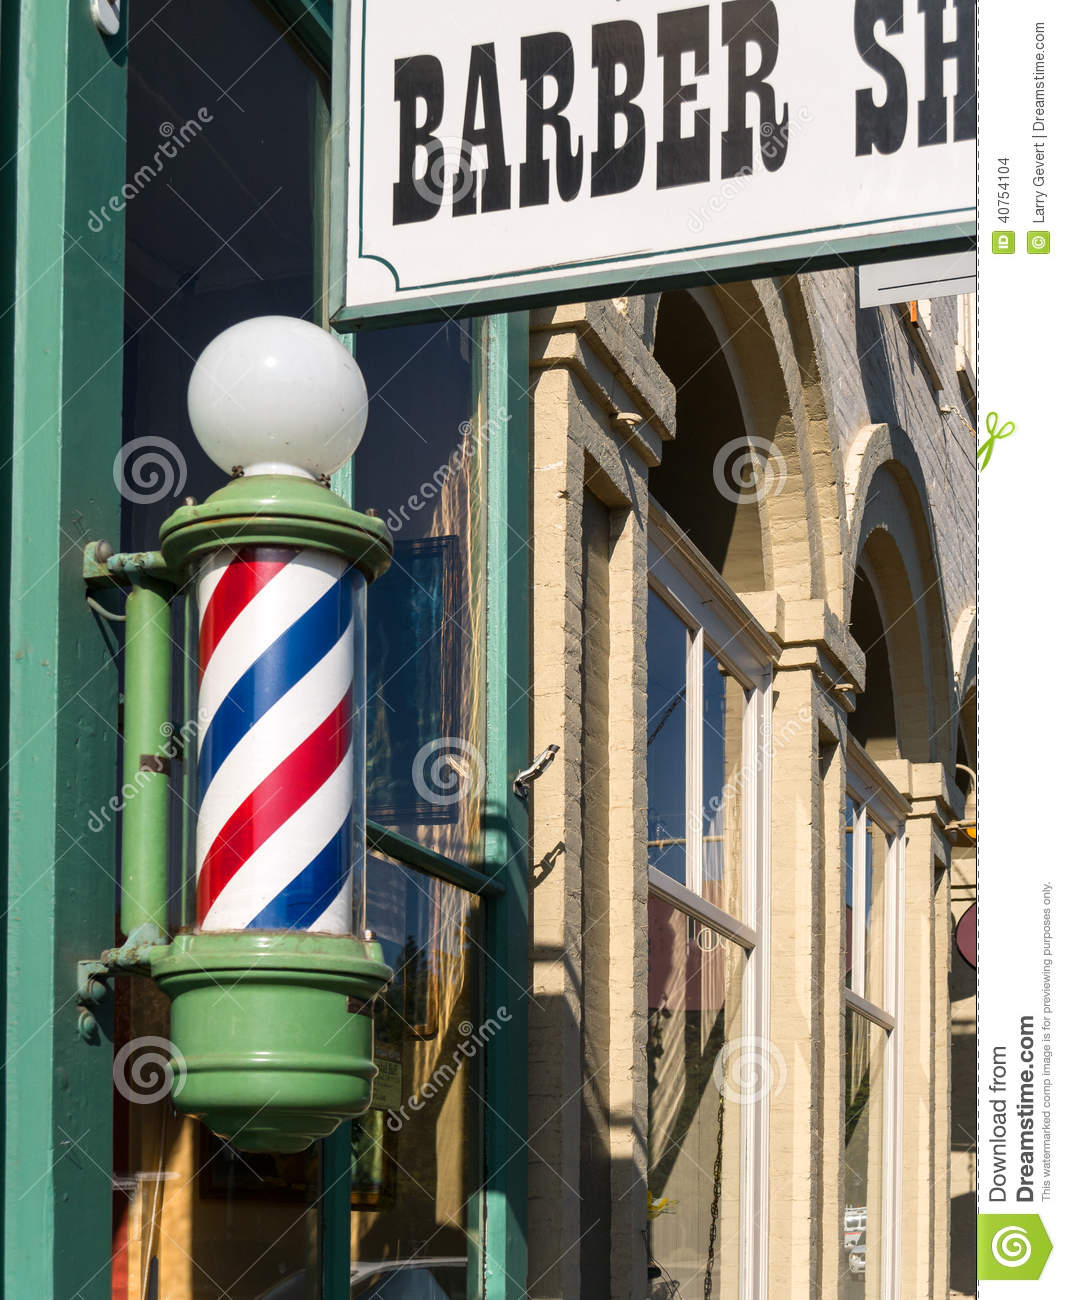 Barber Shop pole and sign